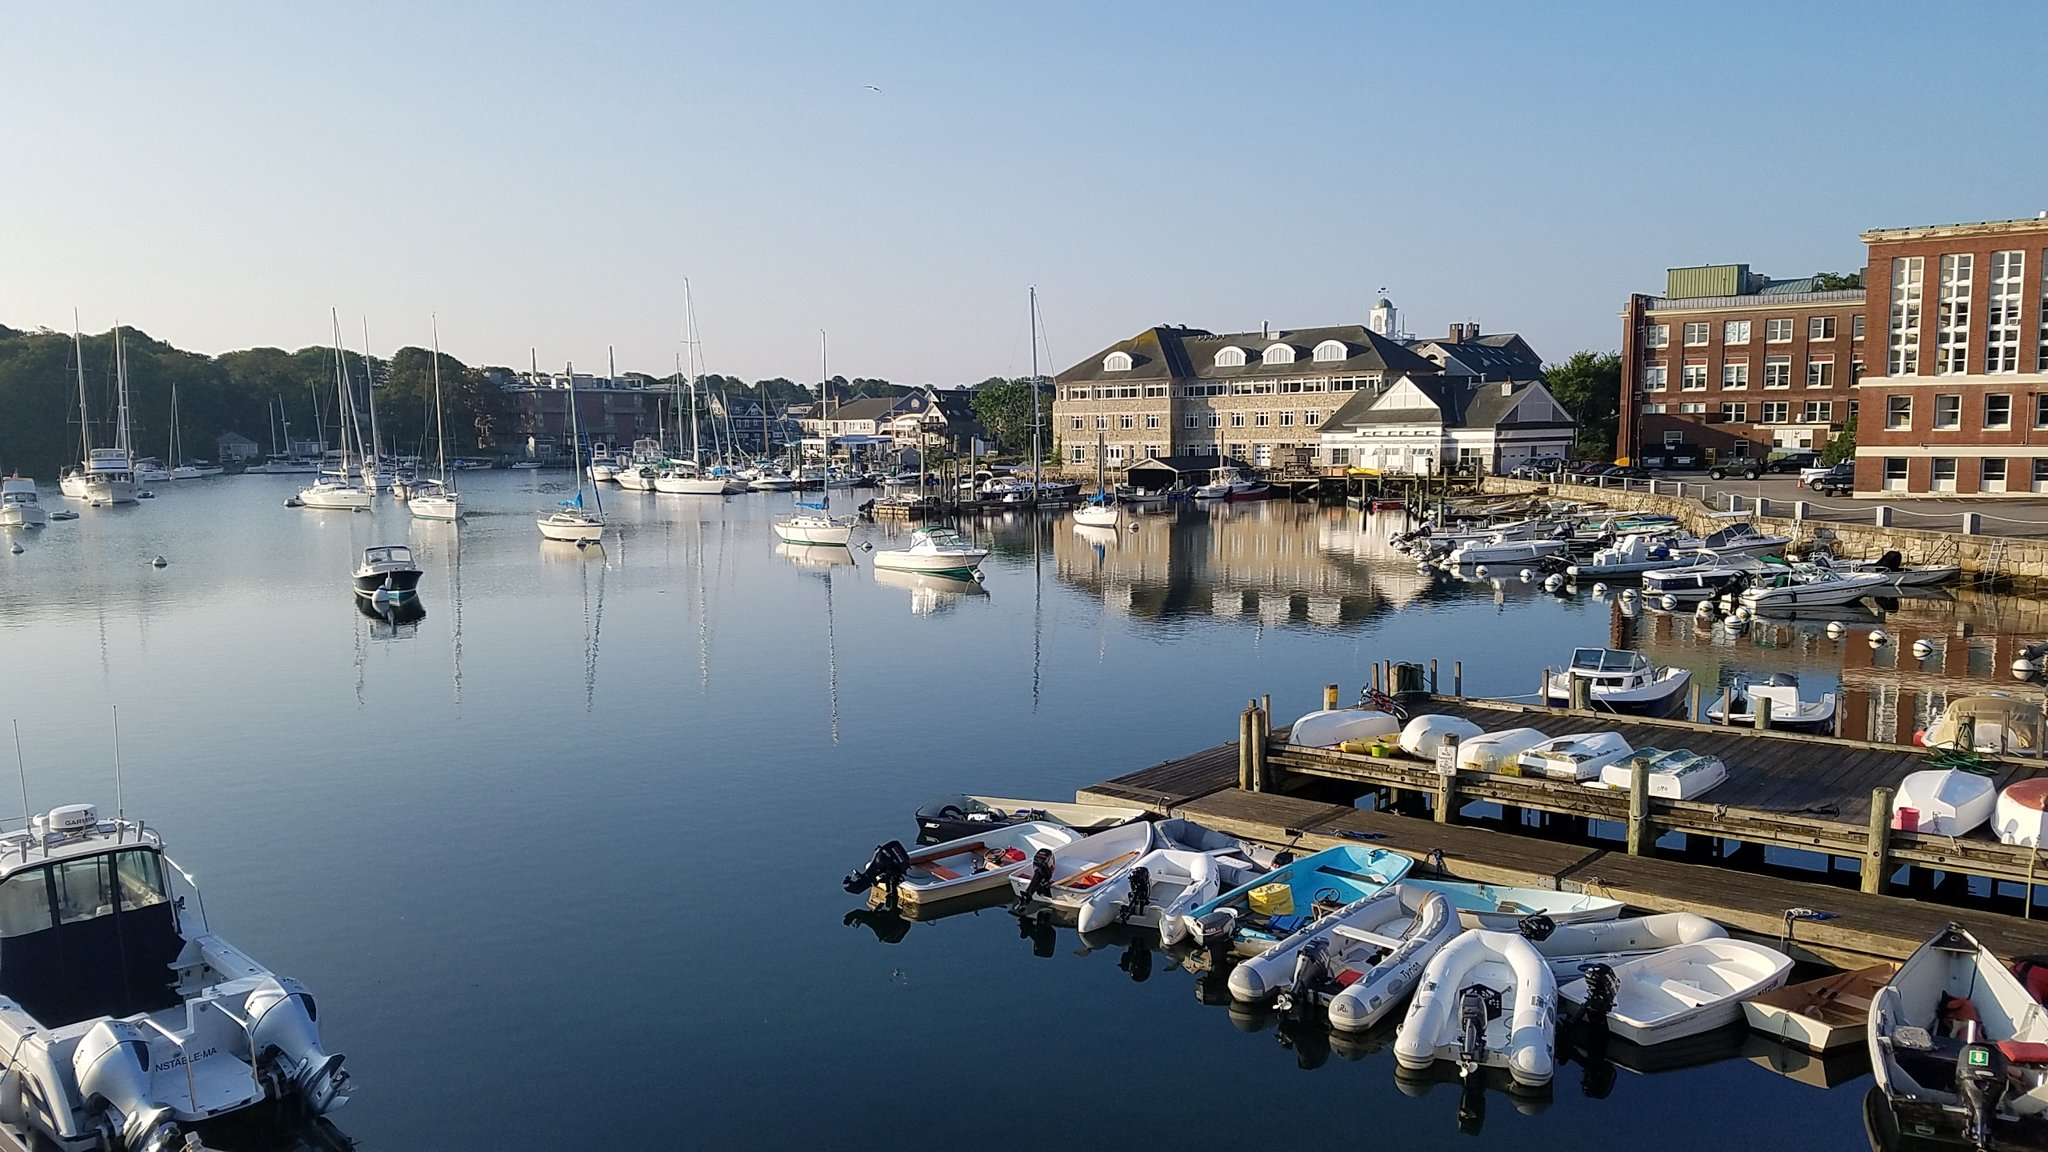 Lovely morning in Woods Hole @BIE2017 Summer course. #Hear #research https://t.co/xxD3BAhVZJ